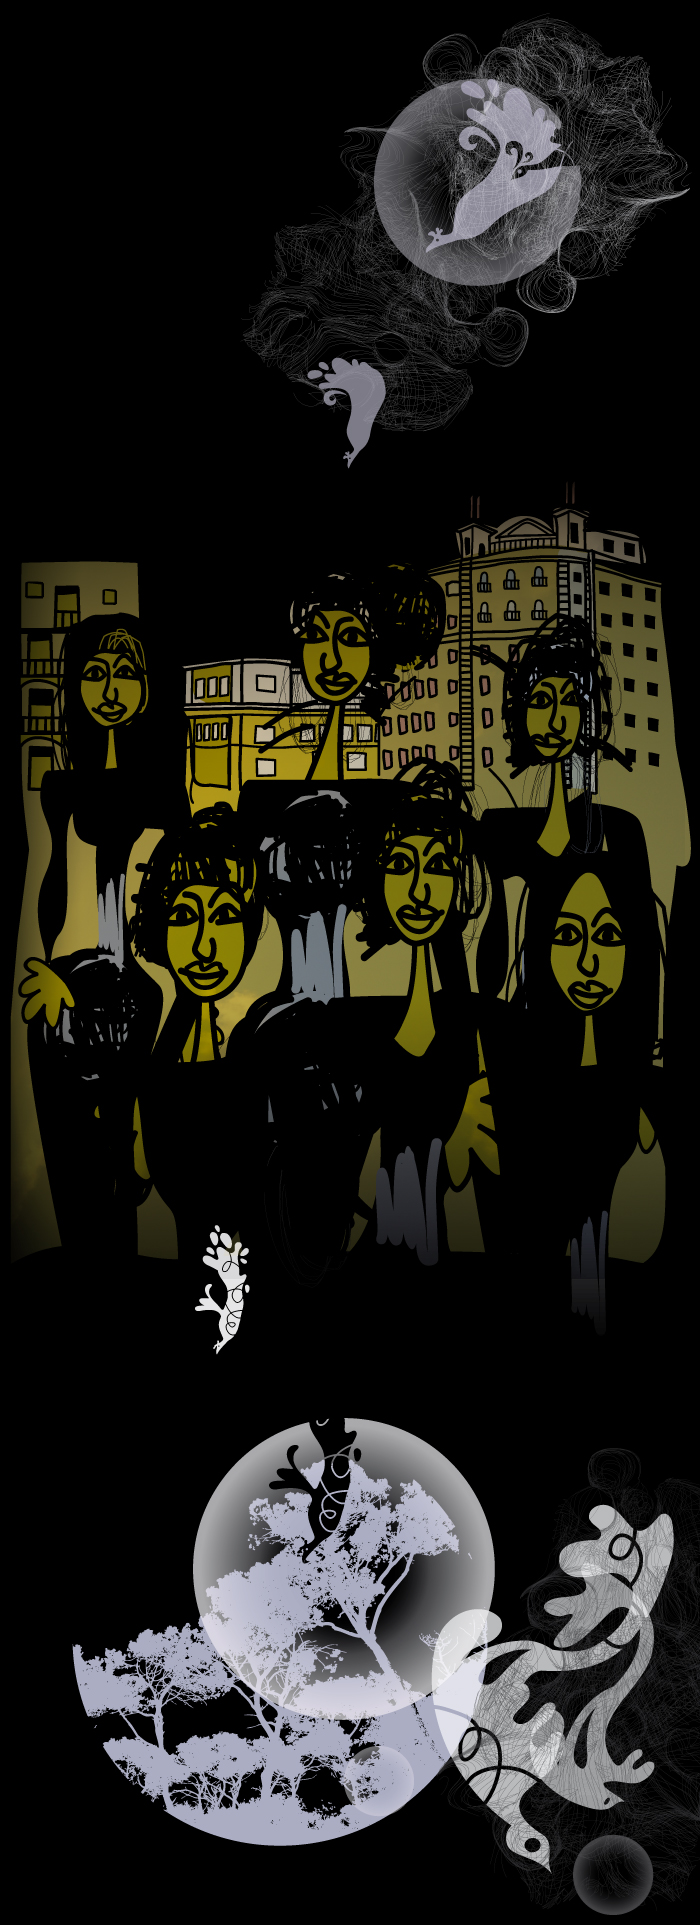 Women in the city, illustrated by Montse Noguera